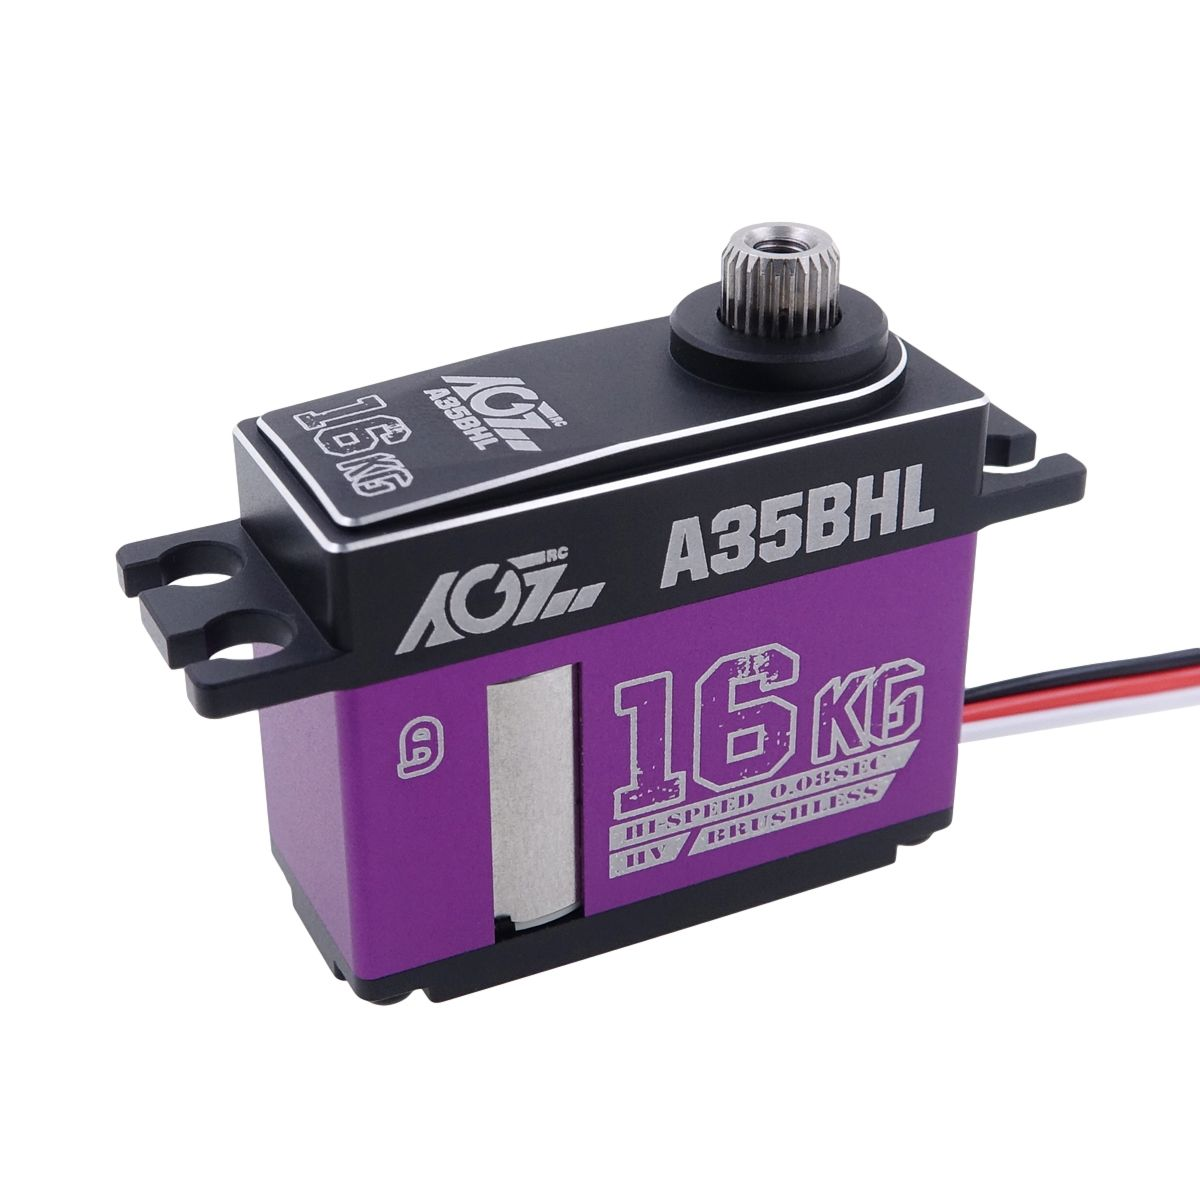 A35BHL Monster Performance 16KG 0.080Sec High Voltage Extra Strong Mid Size Brushless Servo for 3D Helicopter